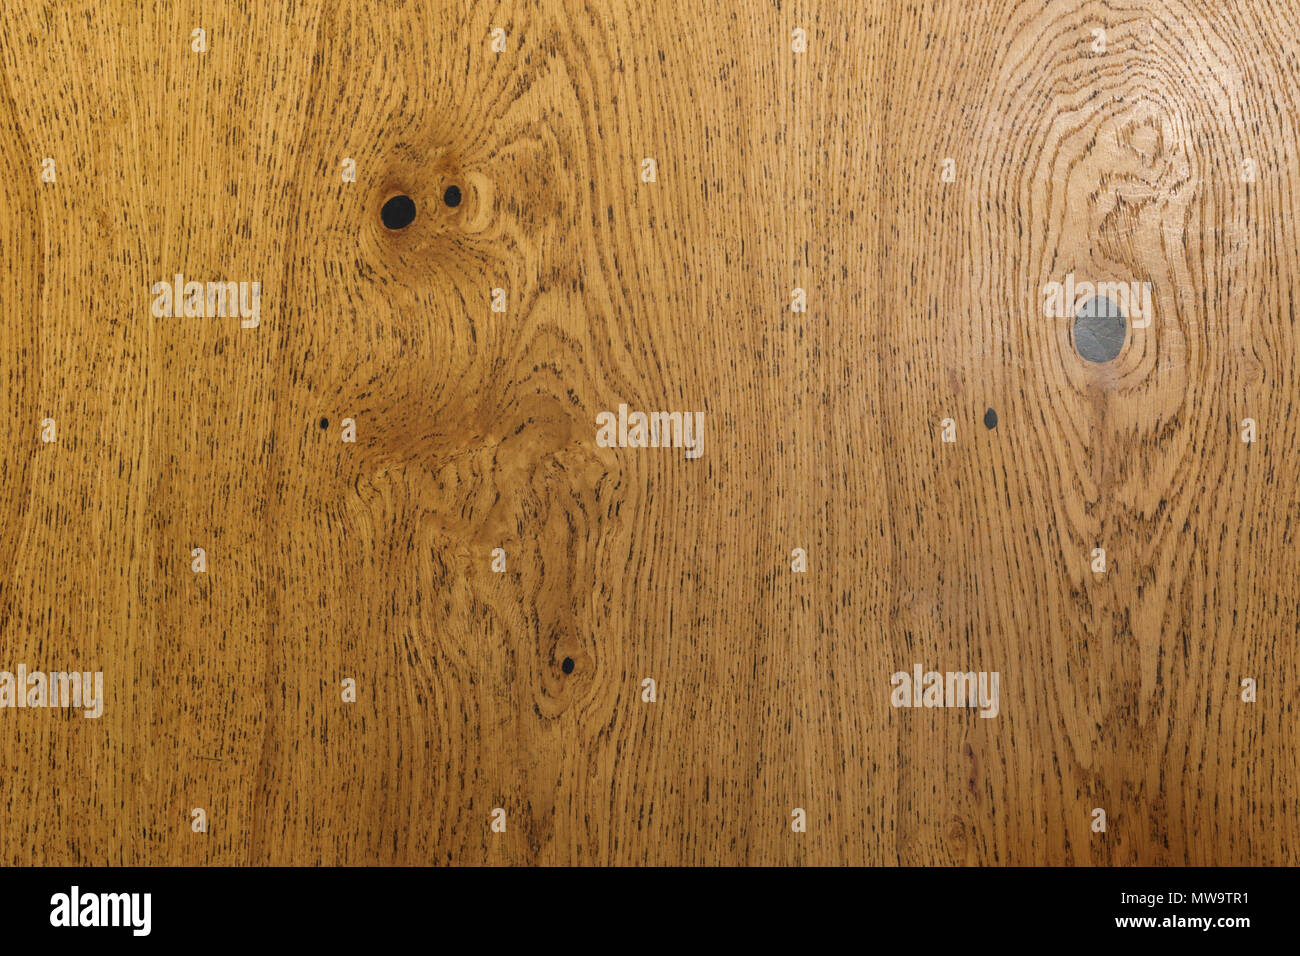 Empty surface of wooden table texture - Stock Image